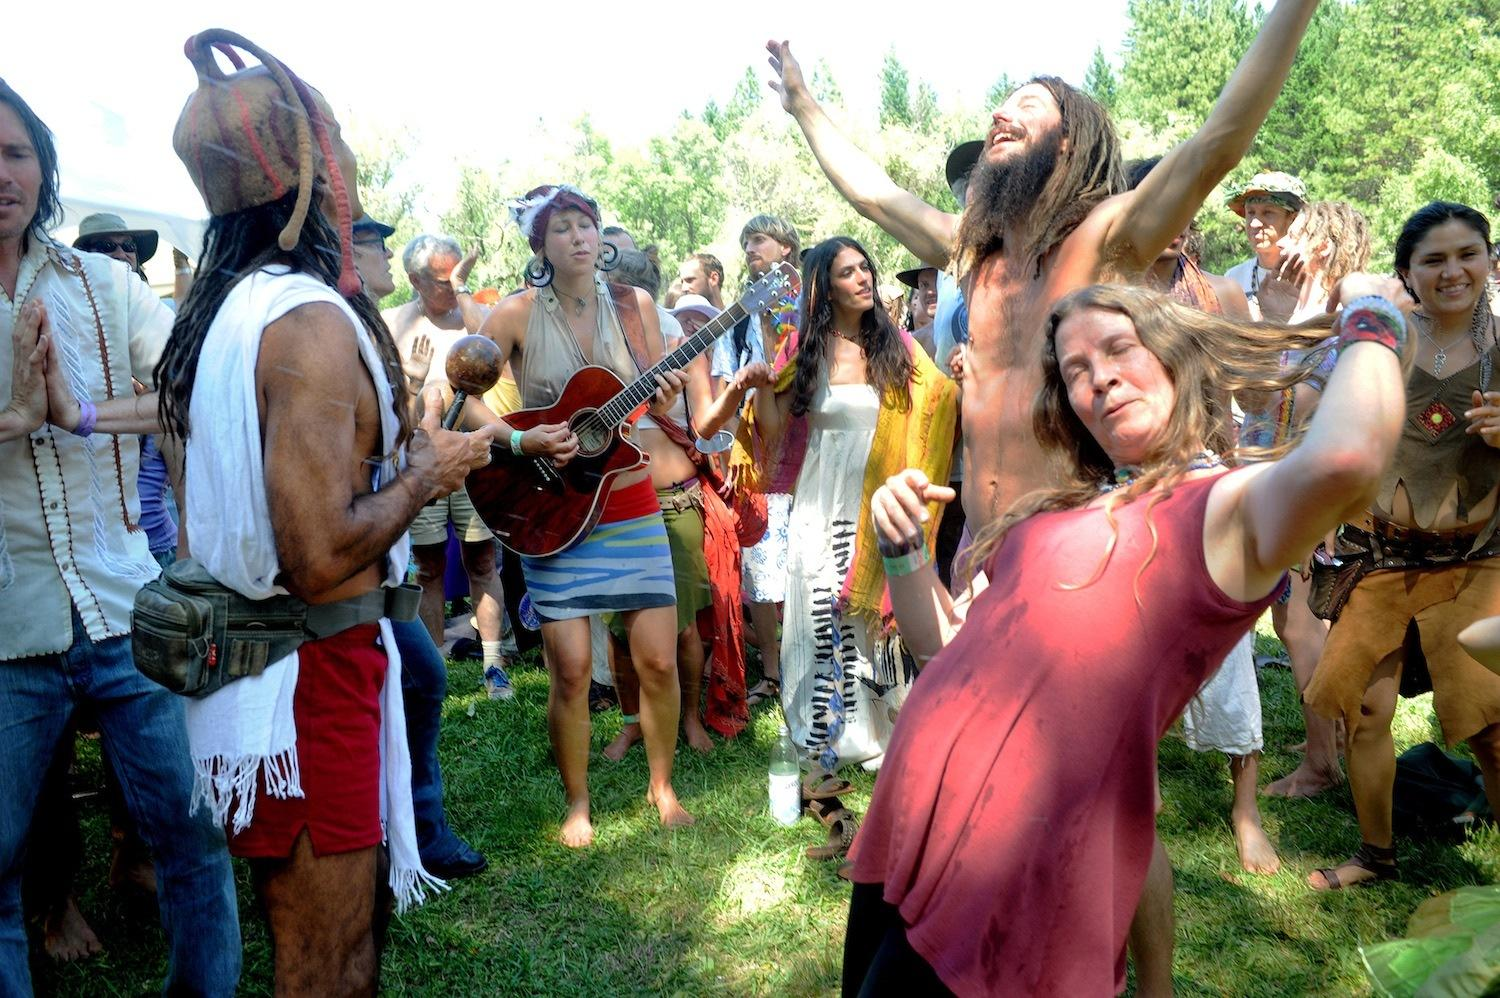 the-naked-ecstatic-world-of-americas-neo-hippies-body-image-1452638393